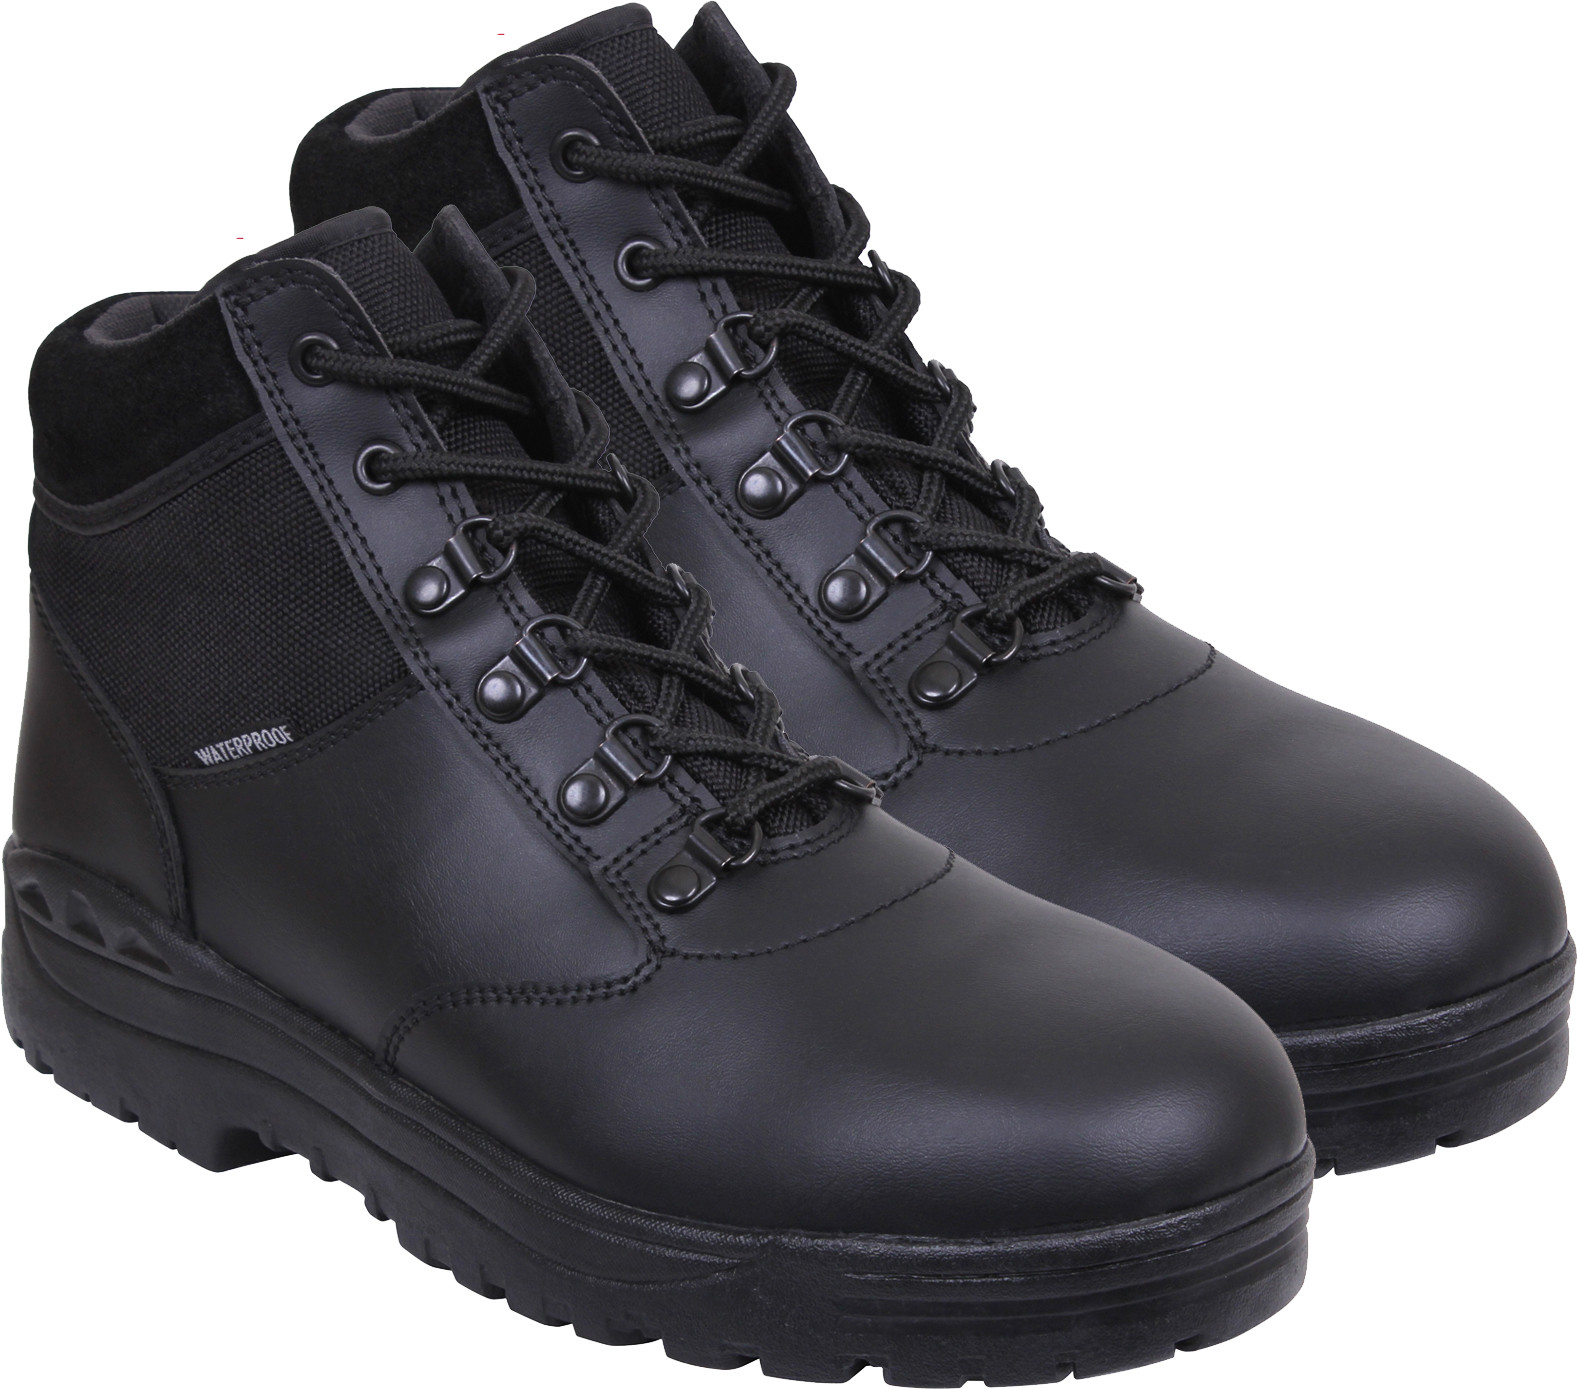 Black Waterproof Forced Entry Slip Resistant Mid Top Tactical Boots c679d27b78d